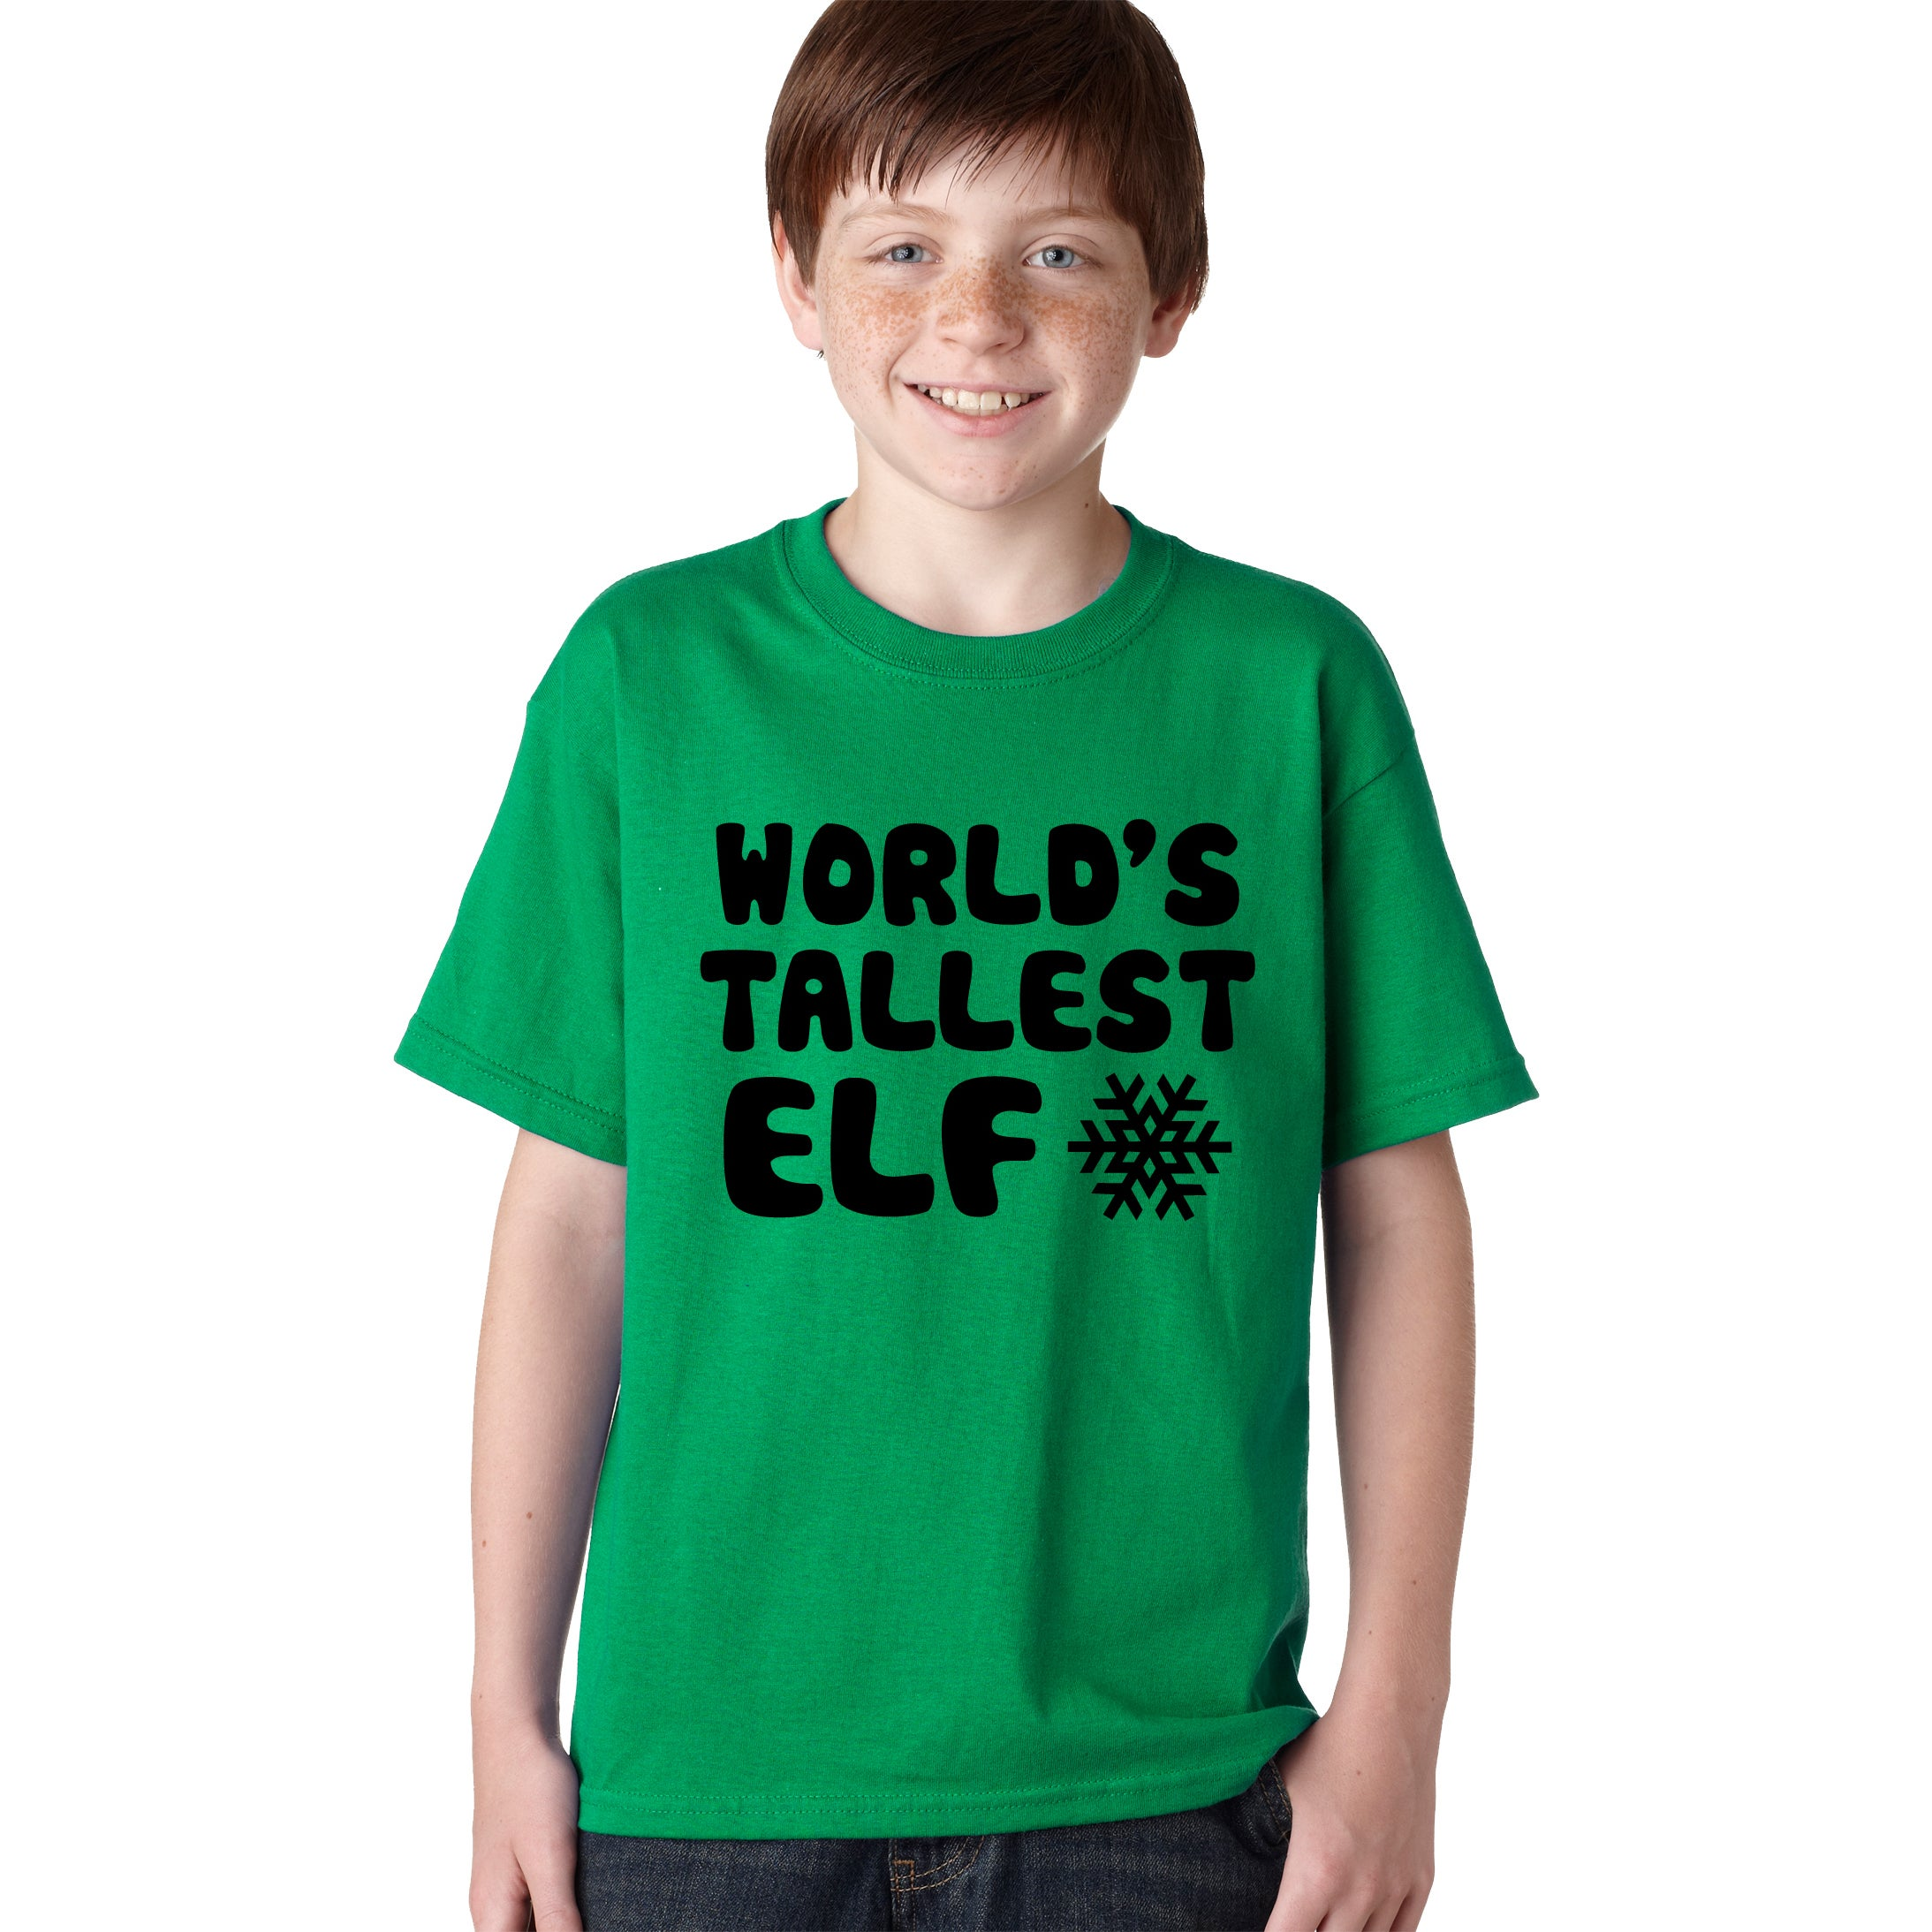 b2284871c Shop Youth World's Tallest Elf T Shirt Funny Christmas Tee Elves Shirt For  Kids - Free Shipping On Orders Over $45 - Overstock - 18849734